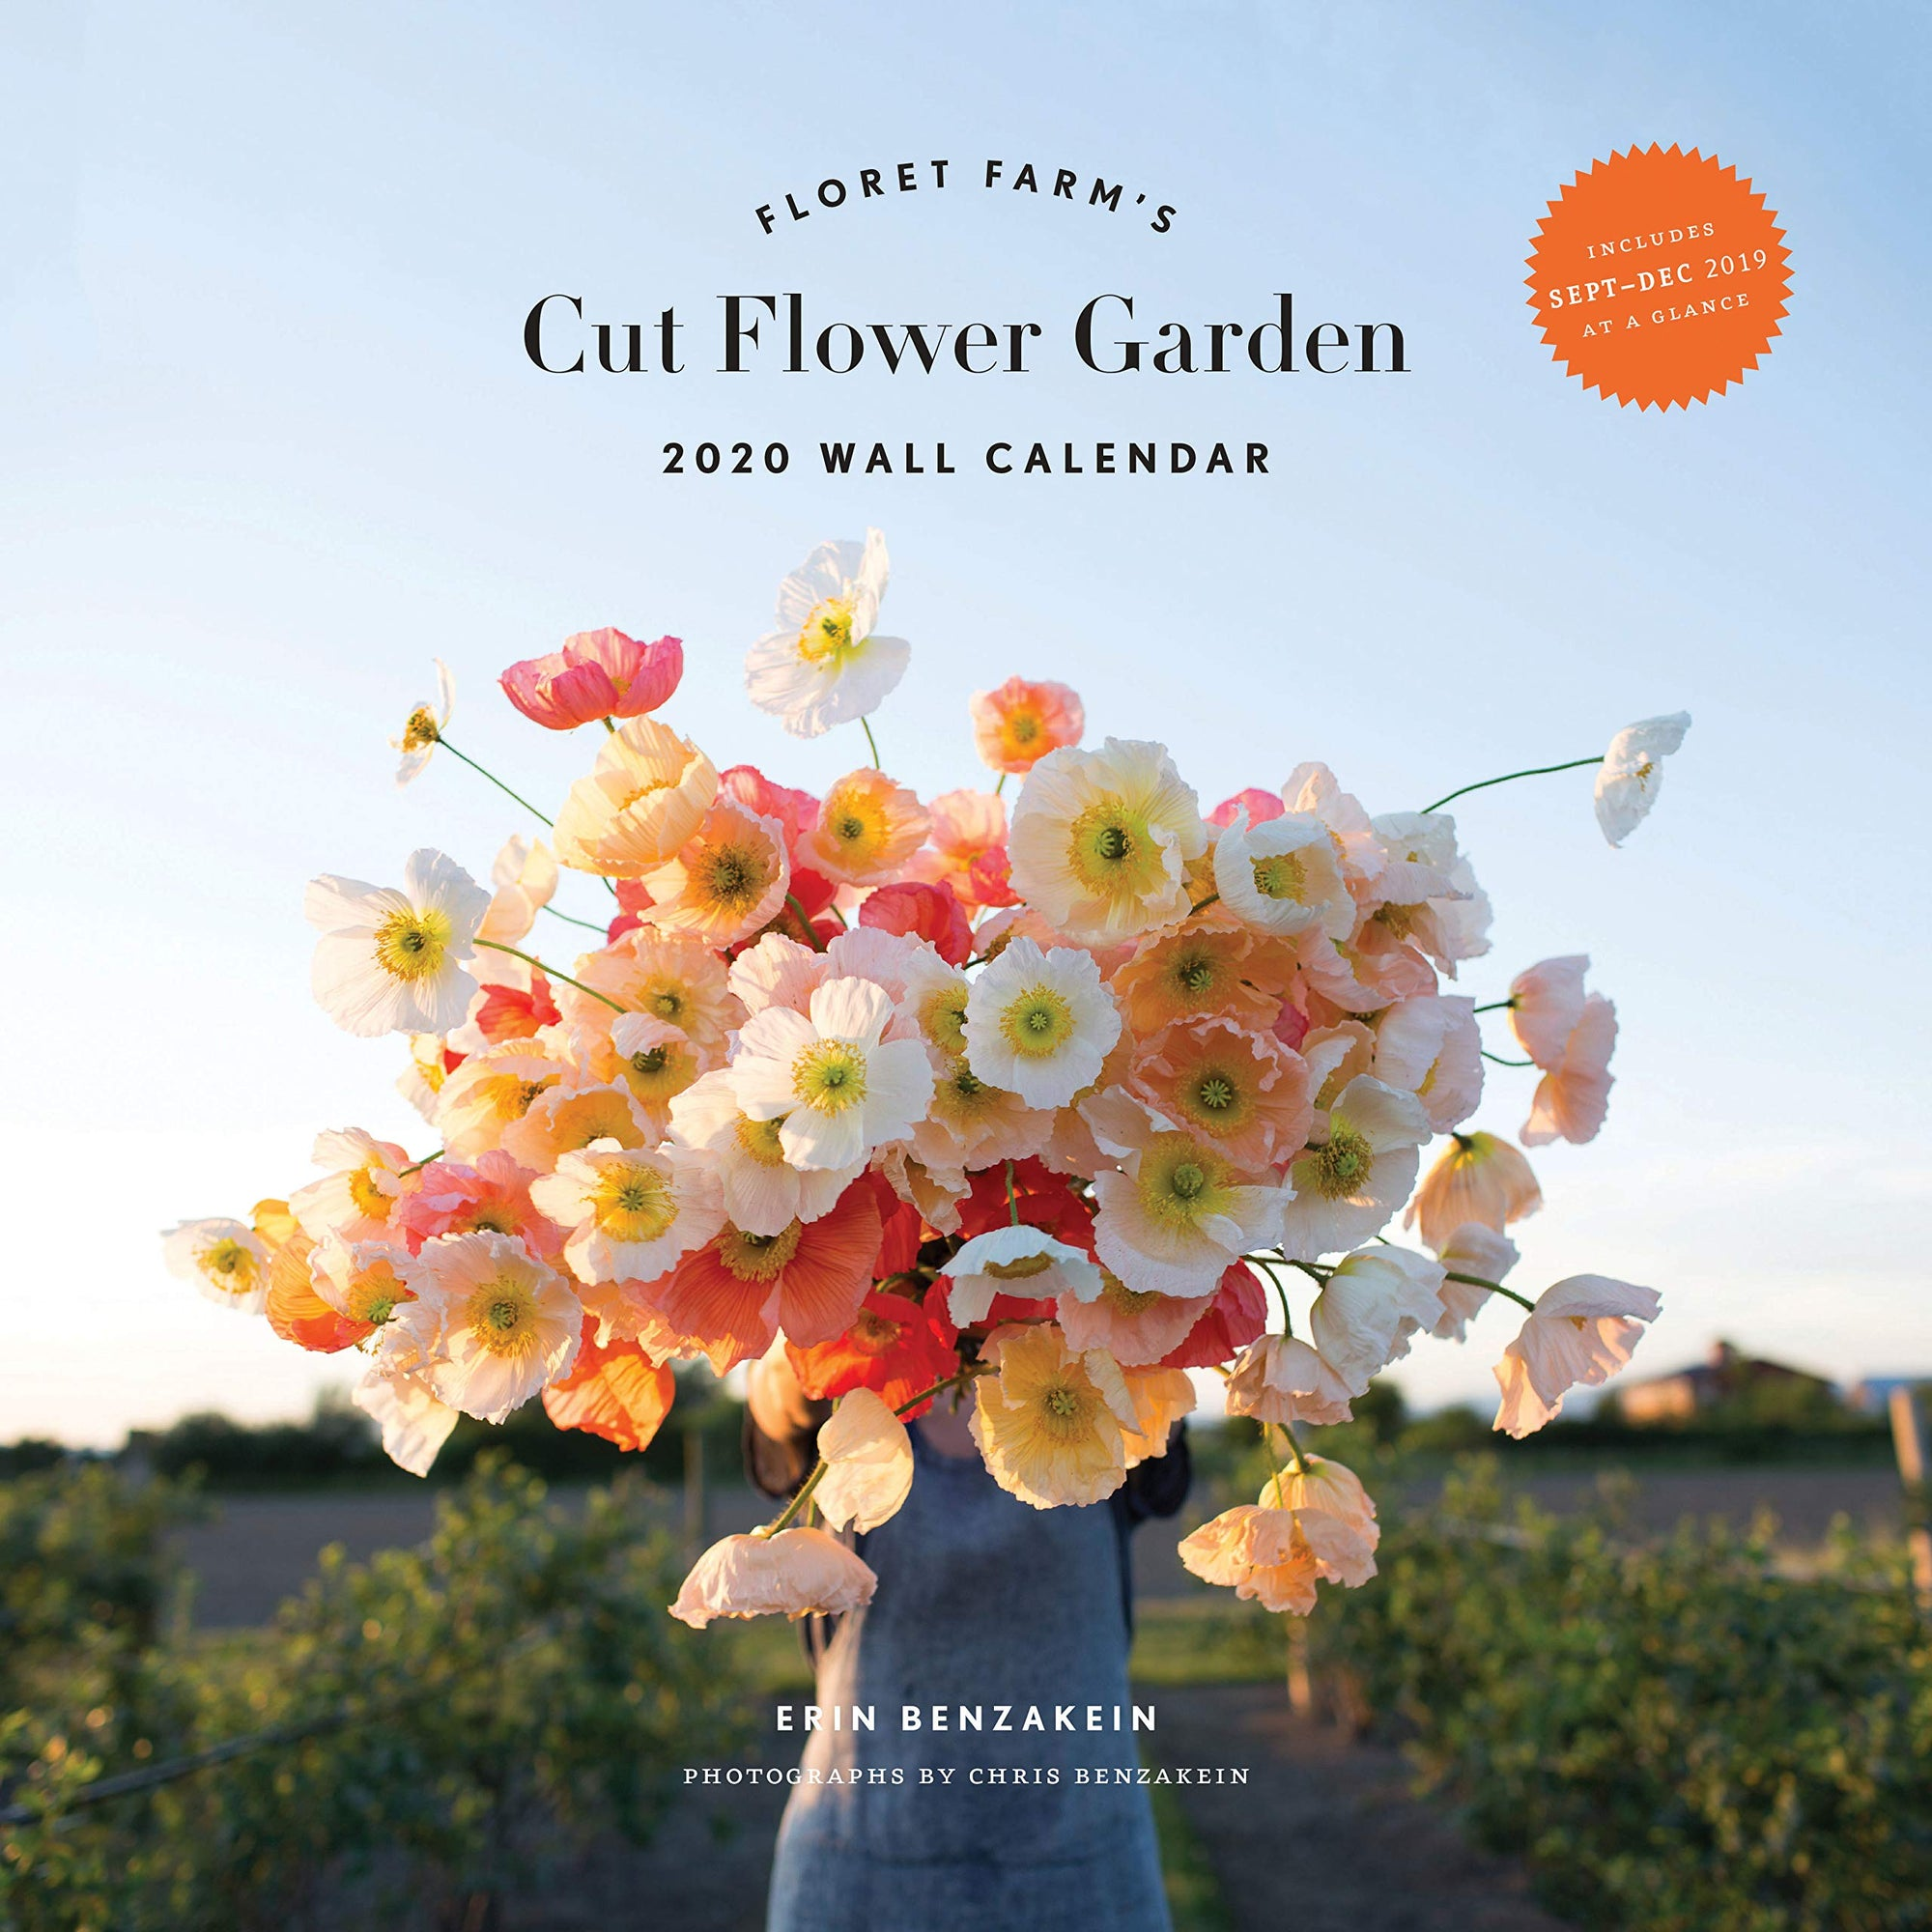 2020 Wall Calendar | Floret Farm's Cut Flower Garden